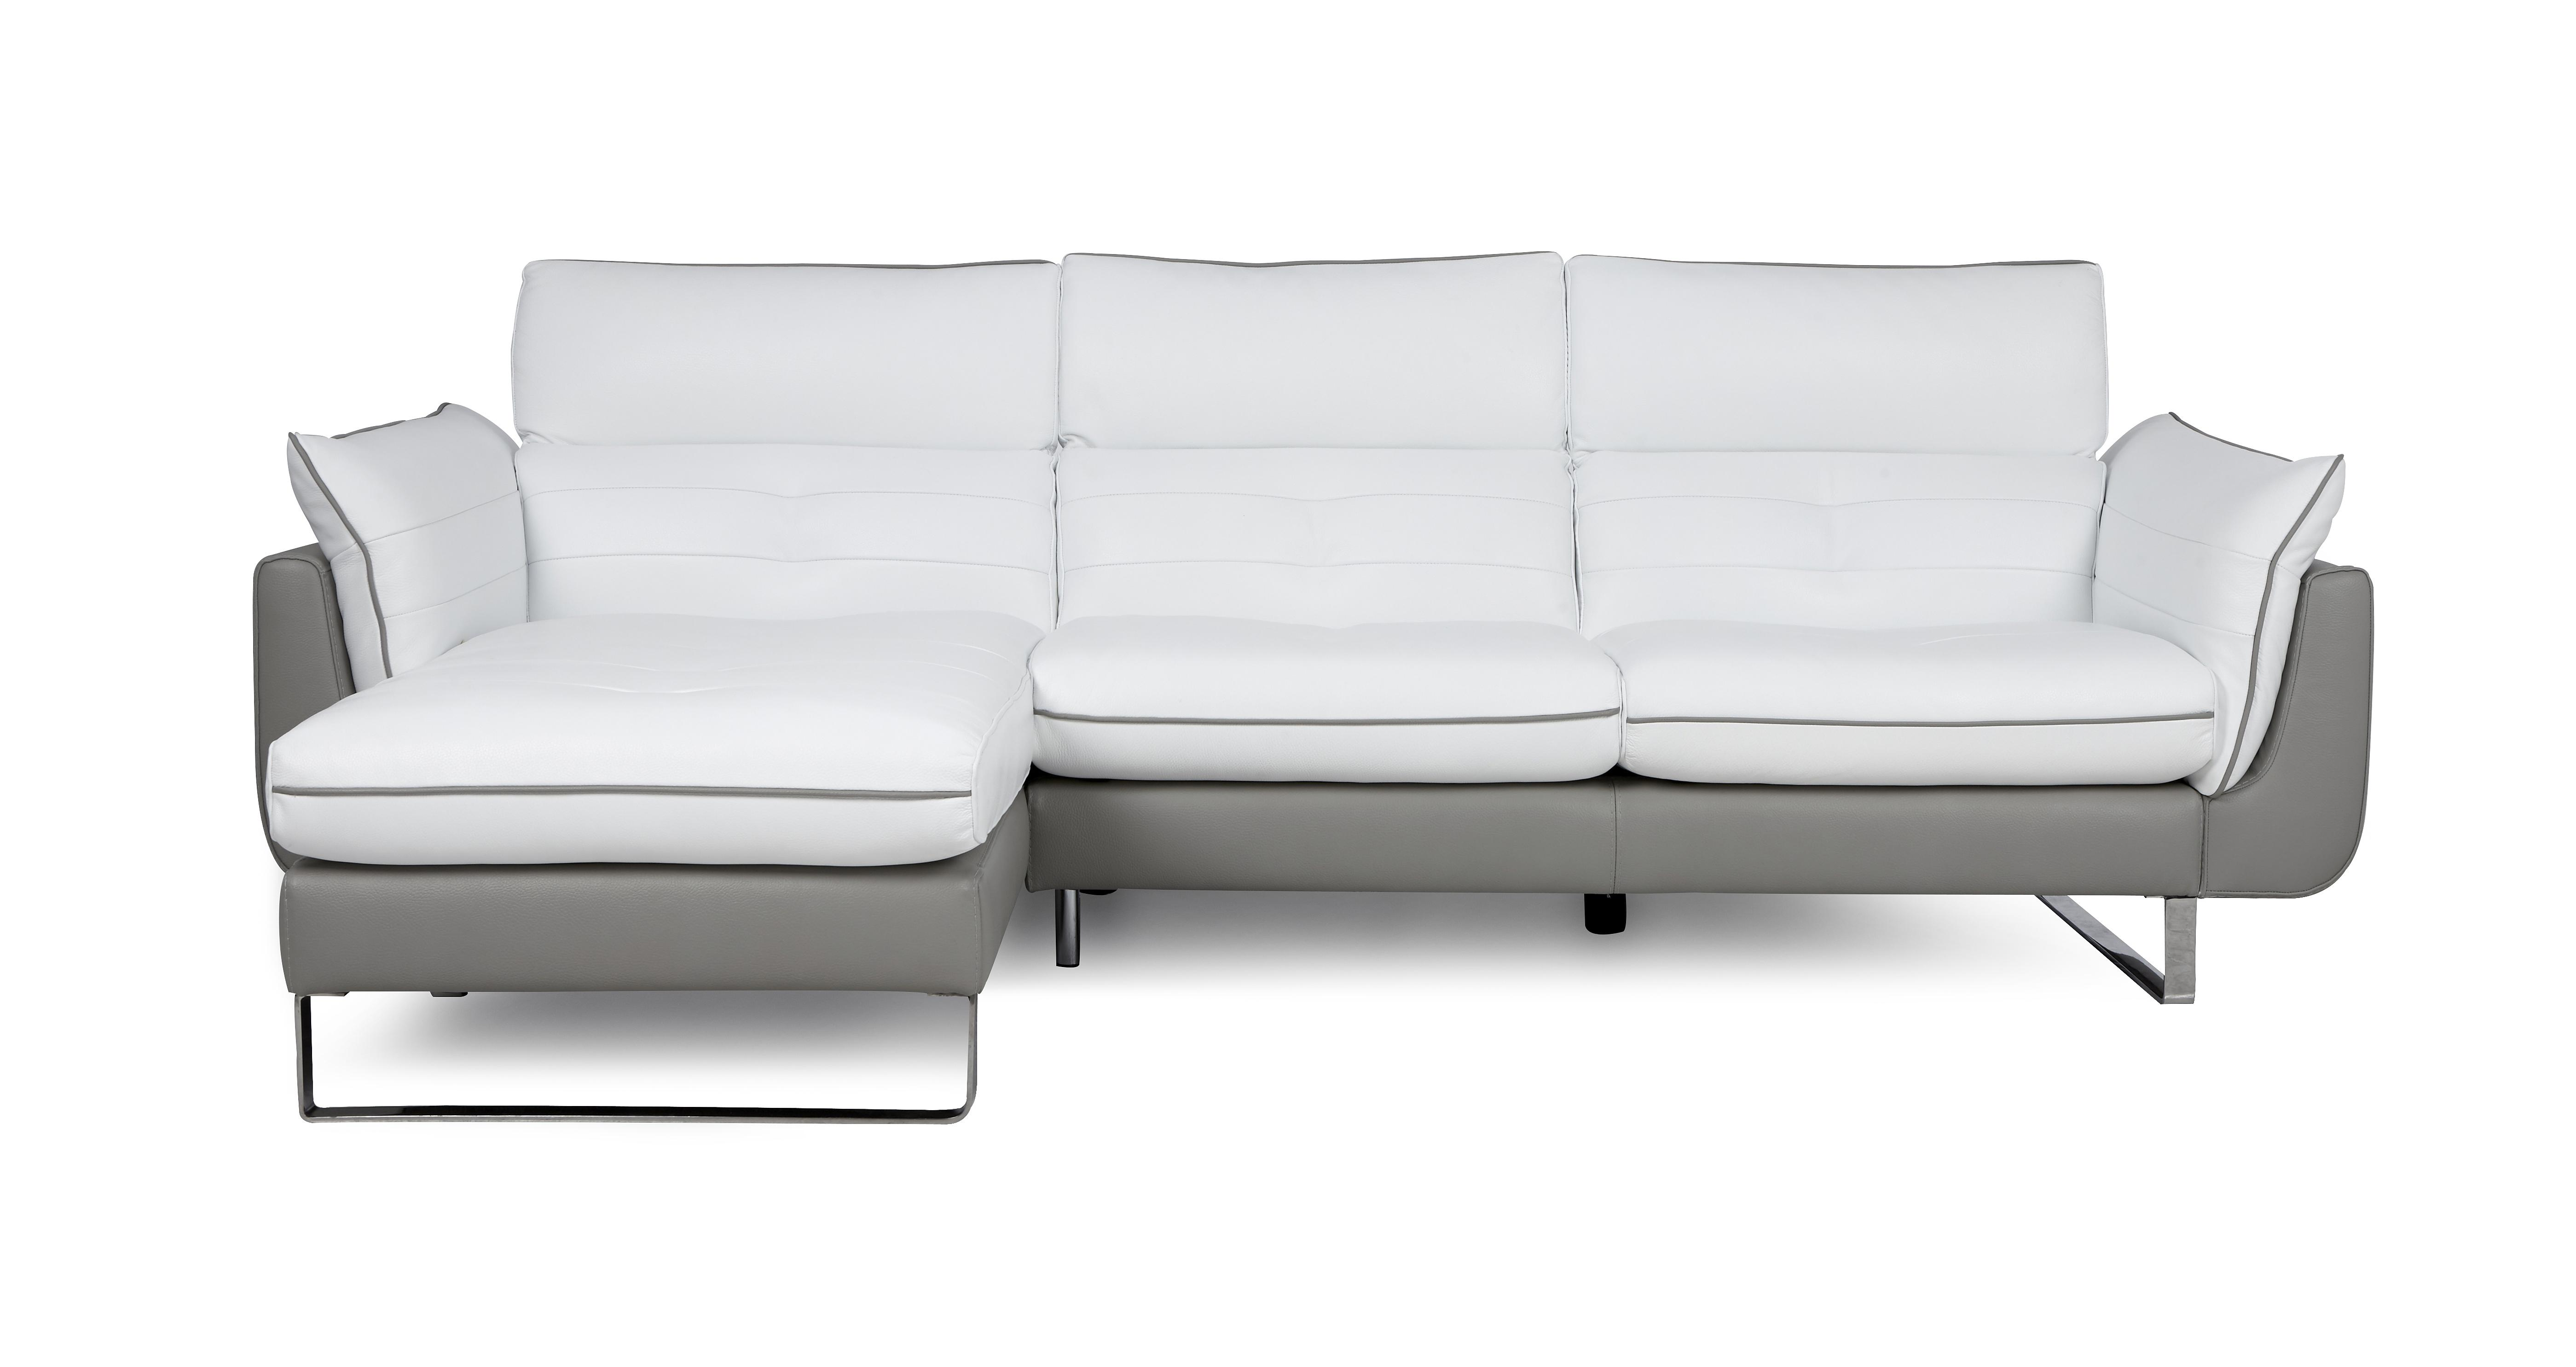 Positano left hand facing chaise end sofa taiga dfs for Chaise end sofa